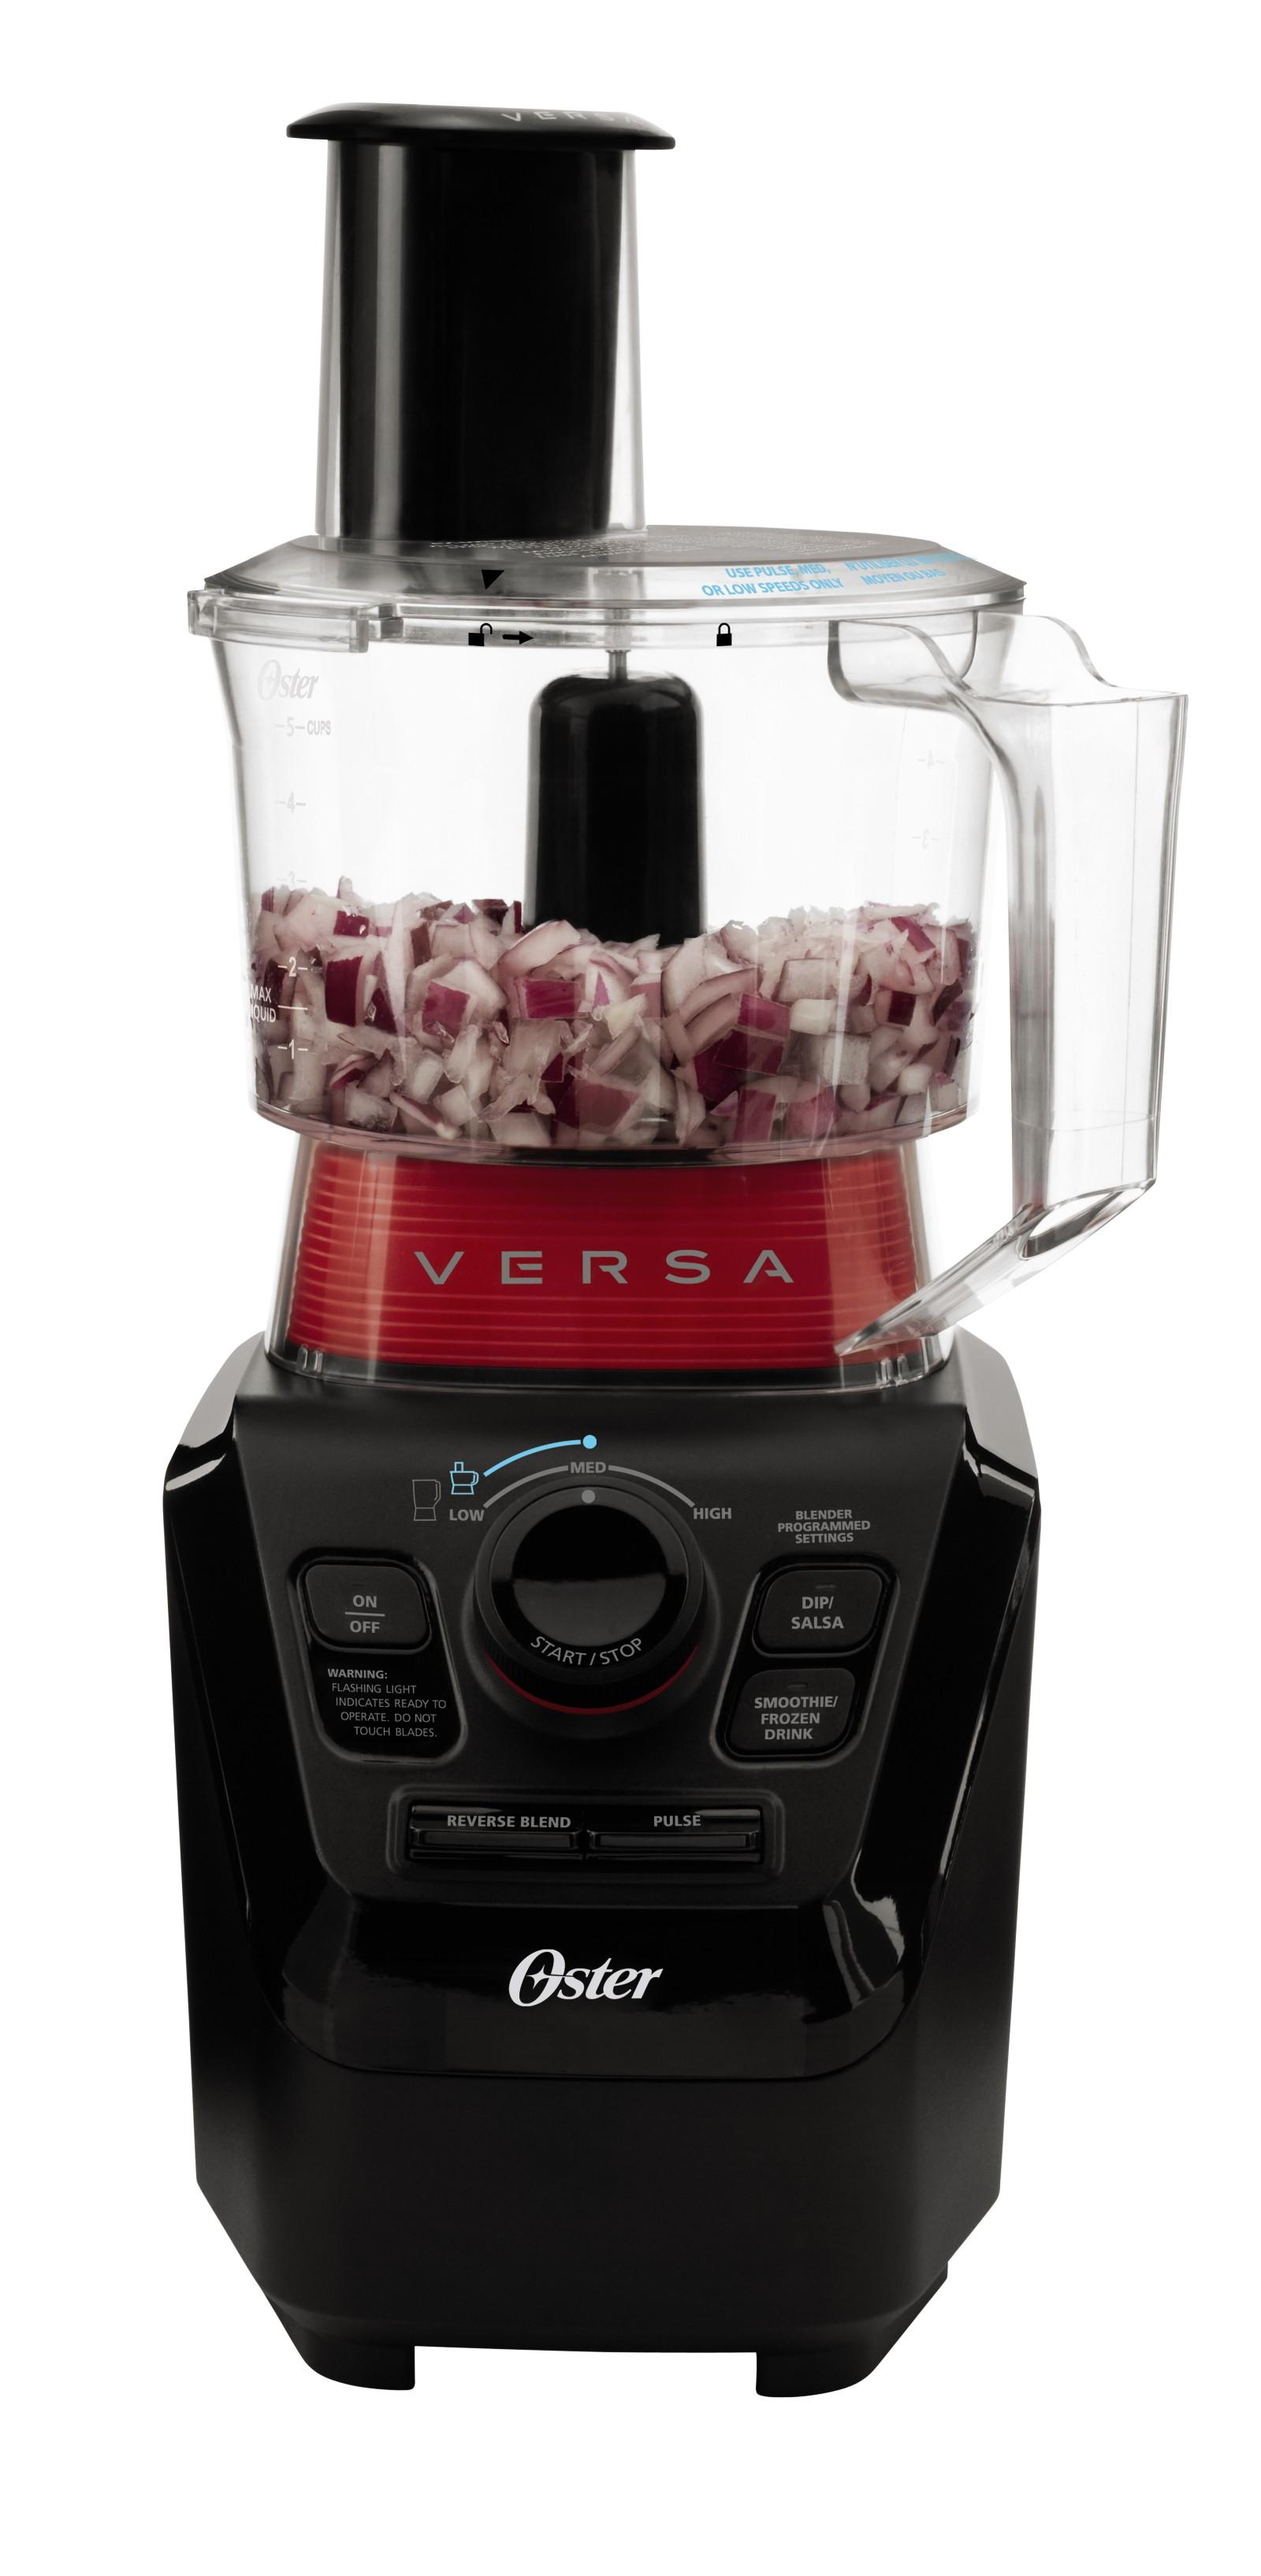 Food processor for Kitchen perfected blender